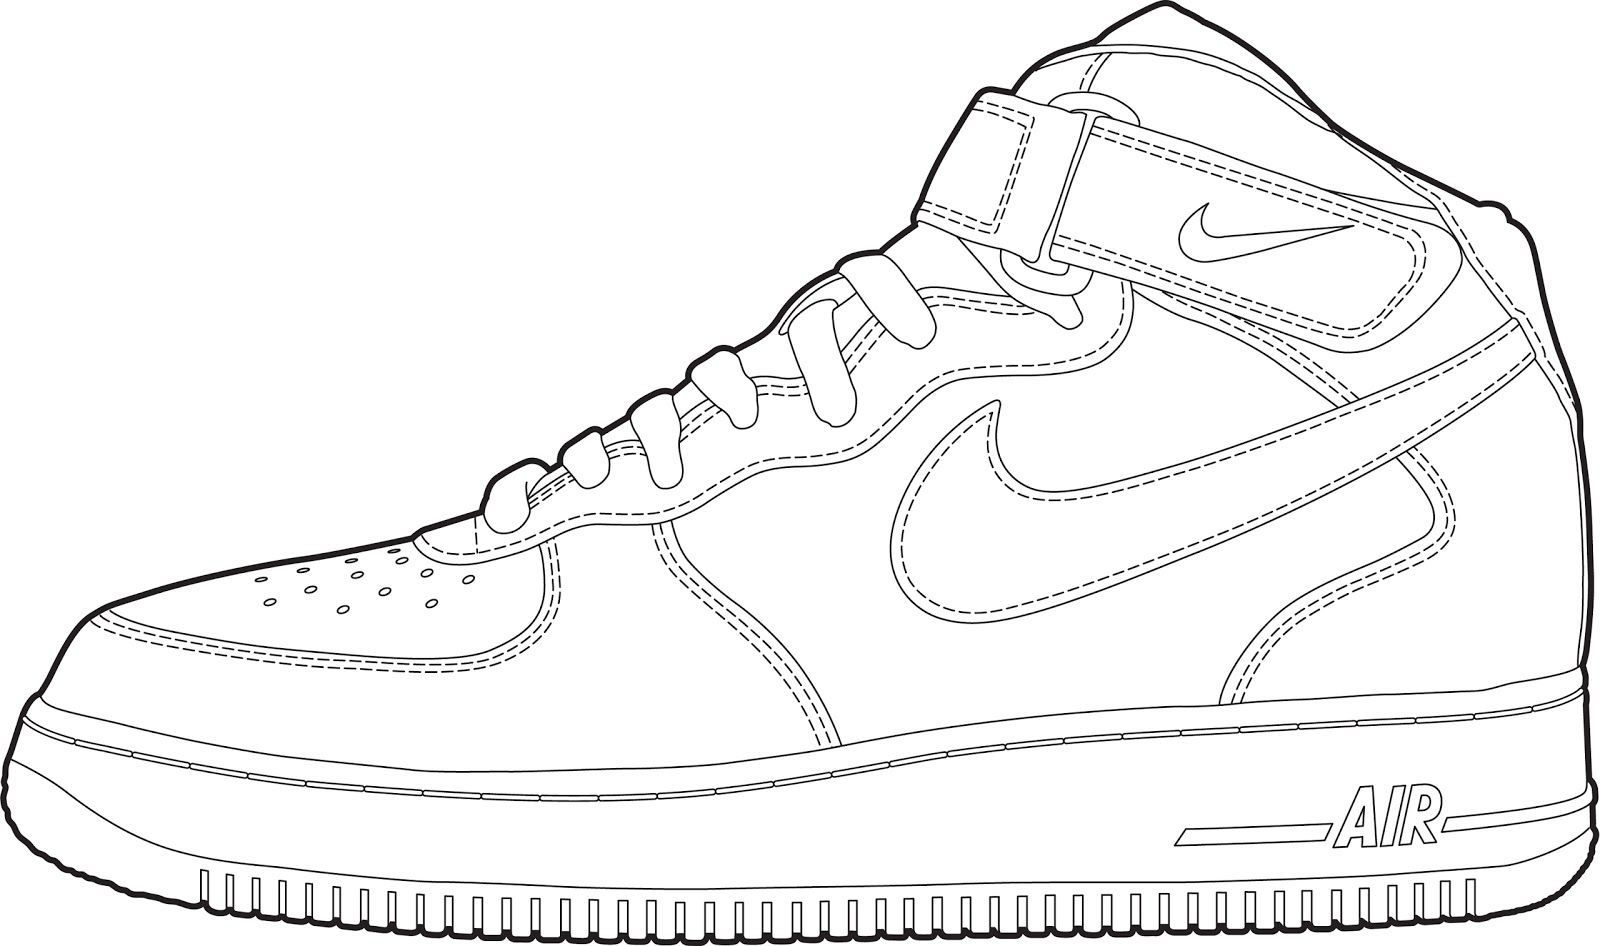 Survival Jordan 11 Coloring Page Sneakers Sketch Pictures Of Shoes Sneakers Drawing